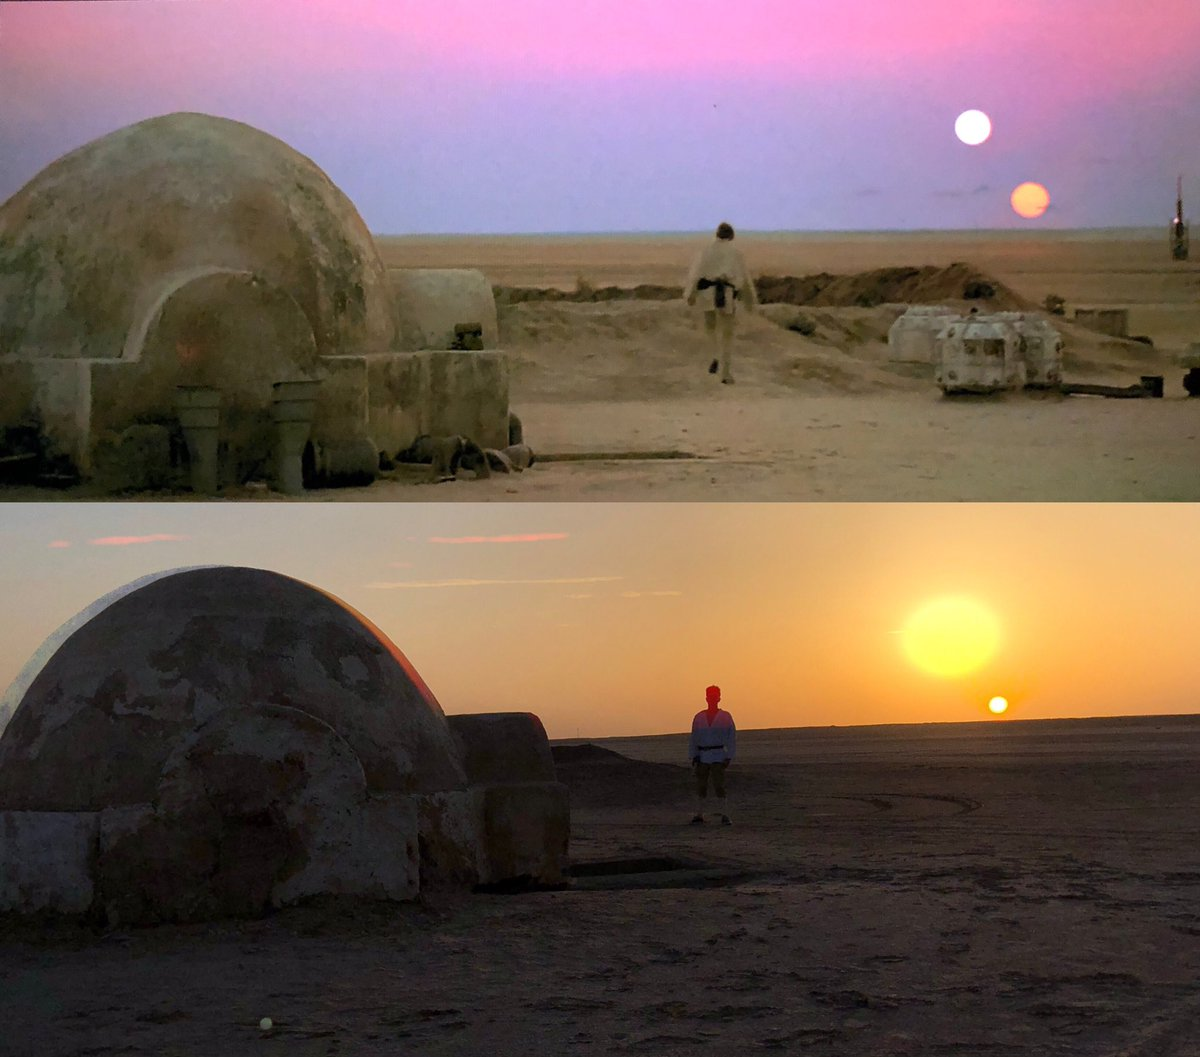 For those who wanted a @StarWars double sunset, we tried our best! Our budget was slightly smaller :) #StarWars